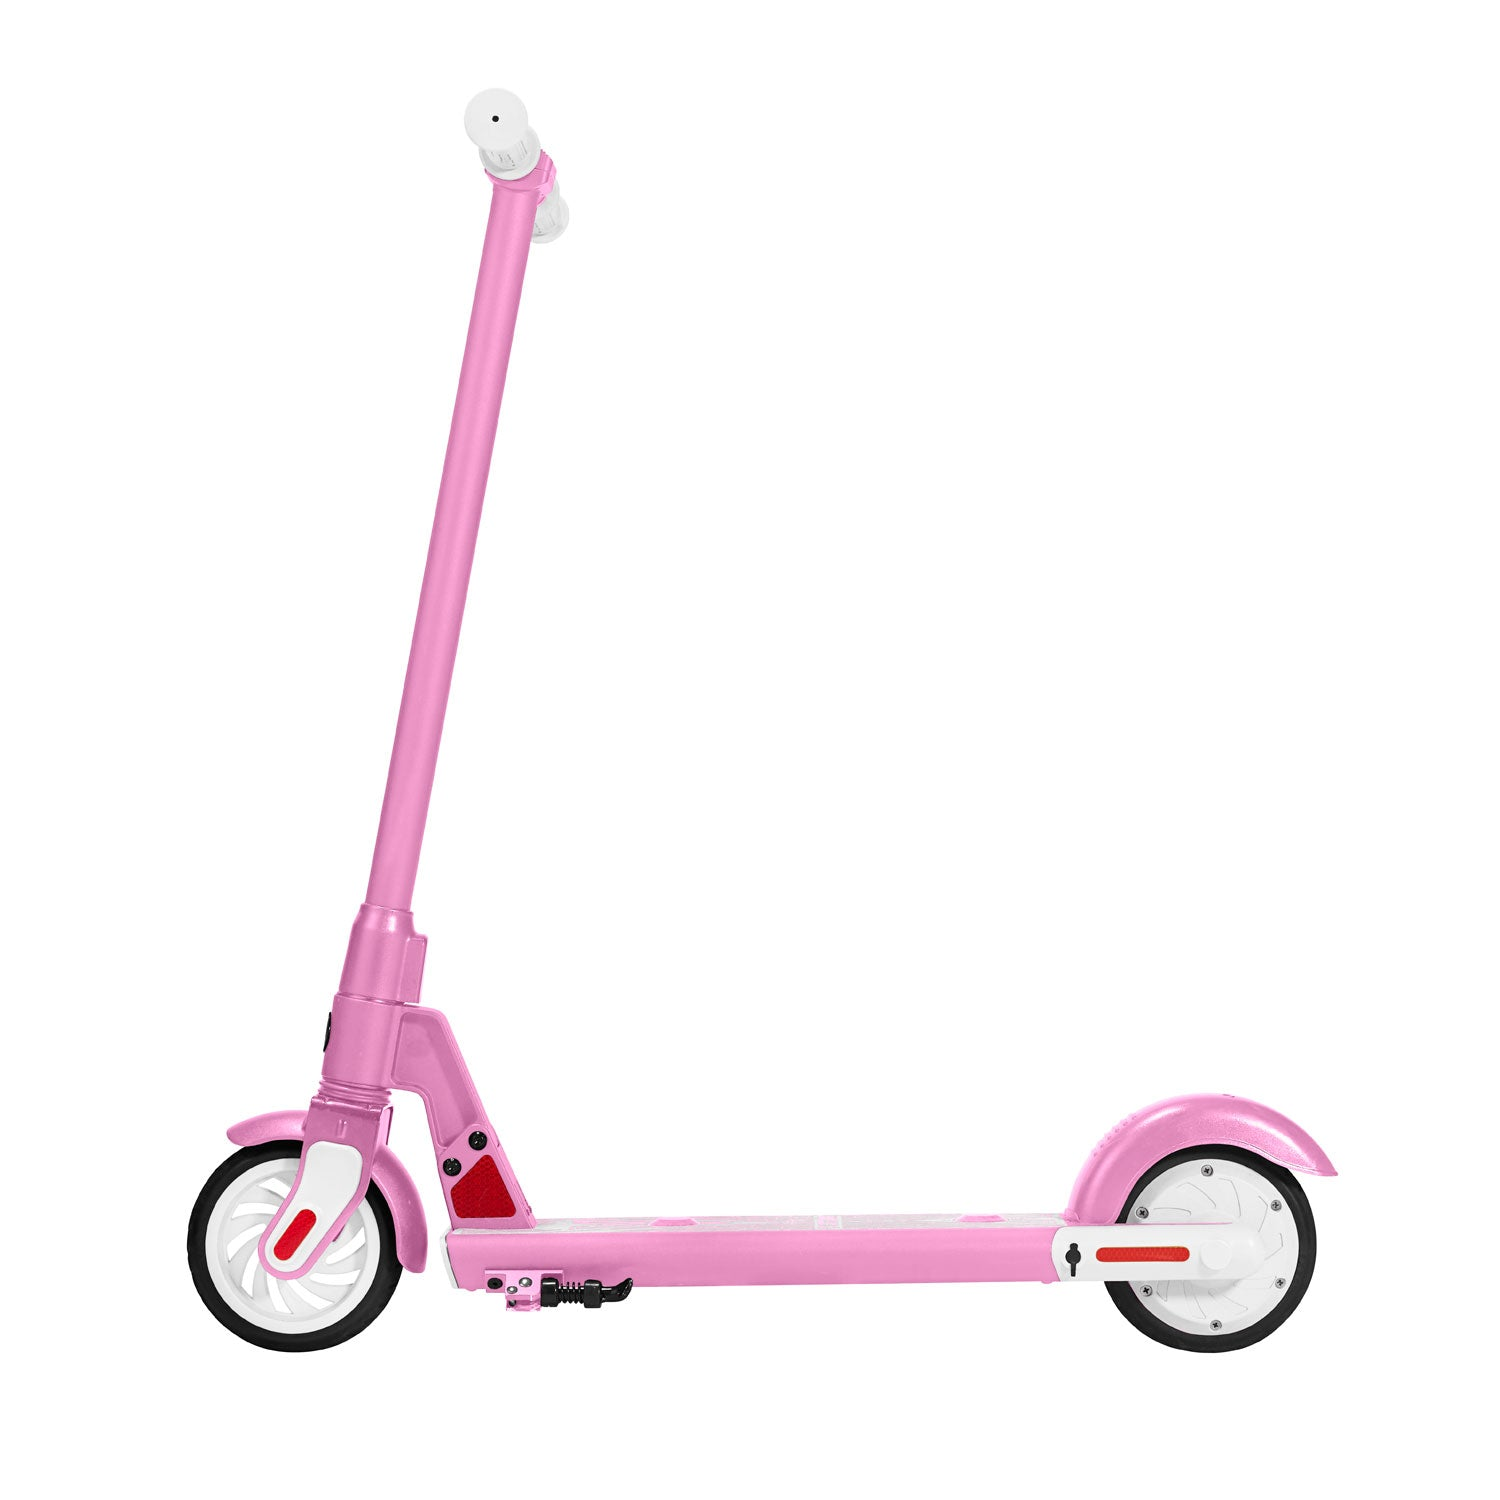 Pink gks electric scooter for kids side image